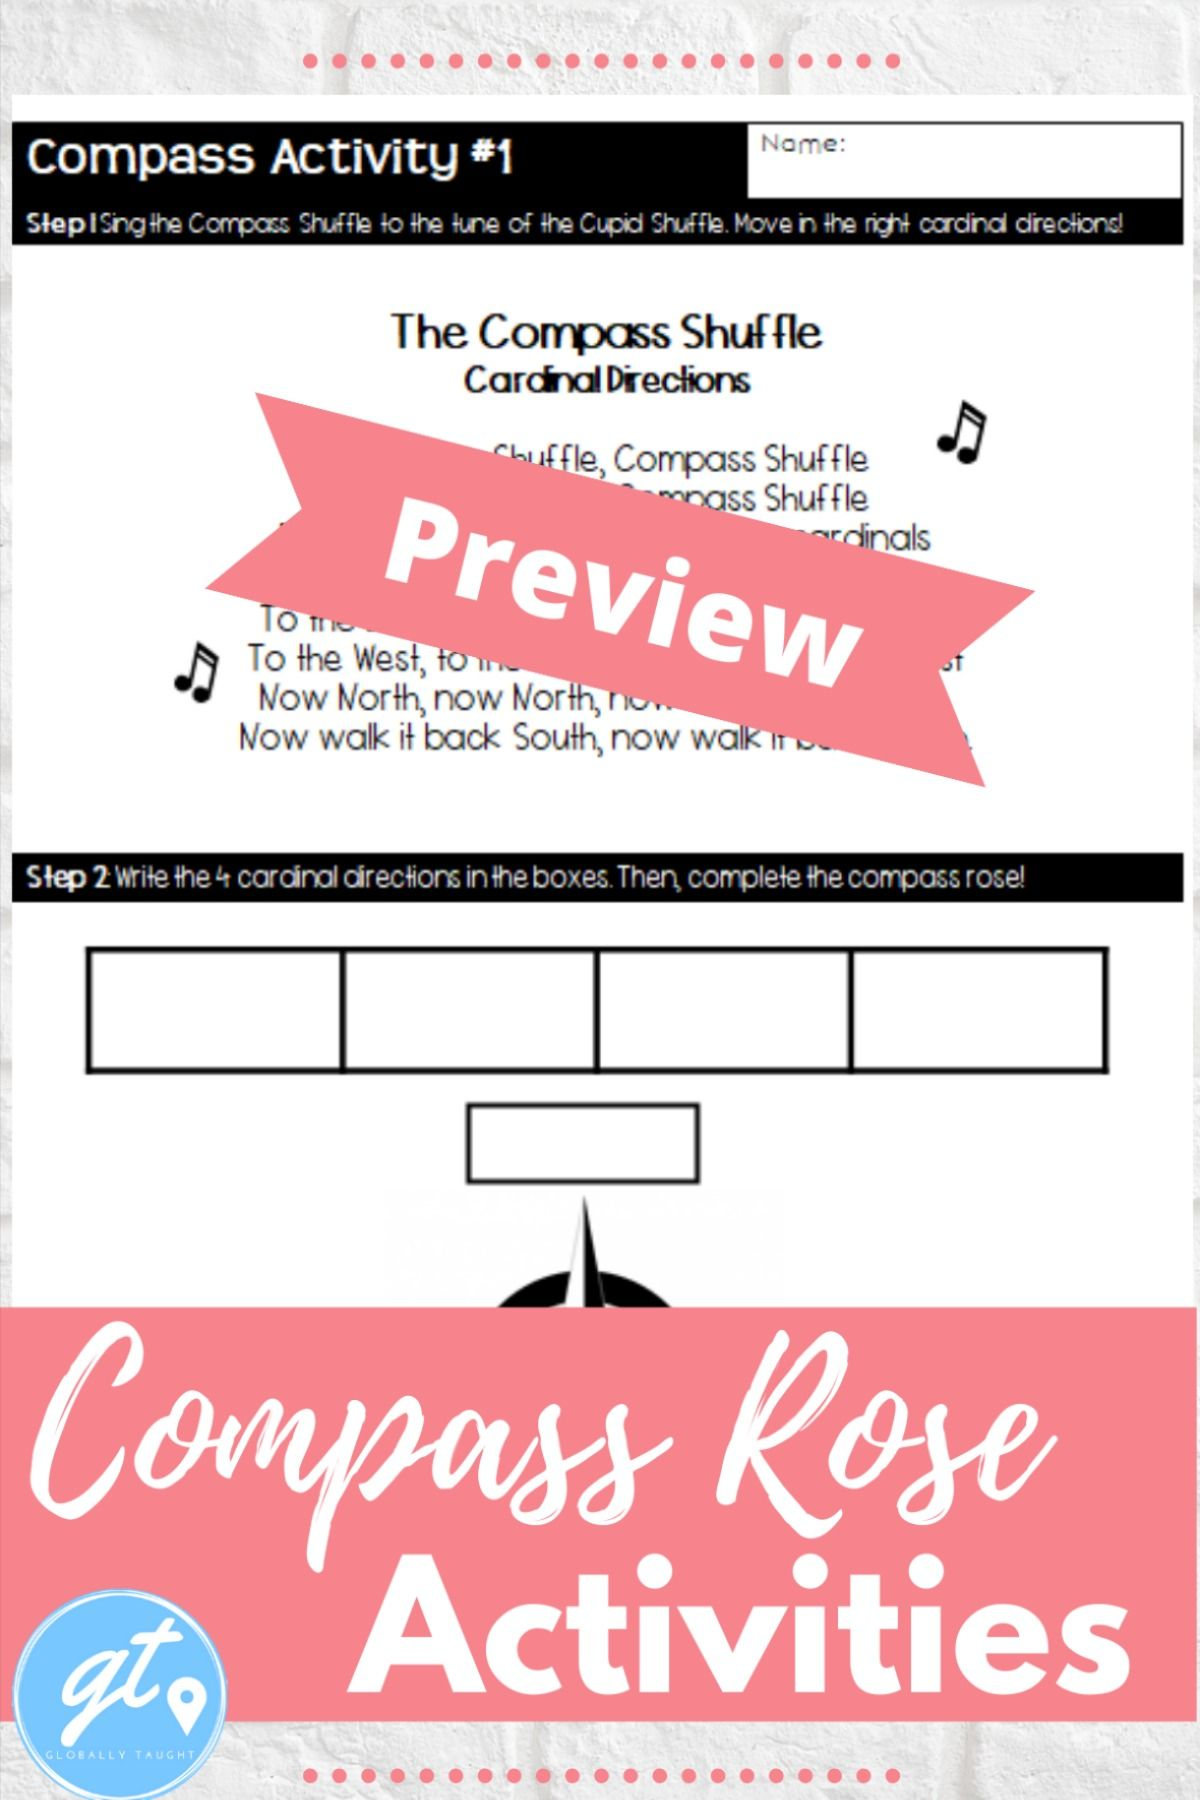 Compass Rose Activities With Cardinal And Intermediate